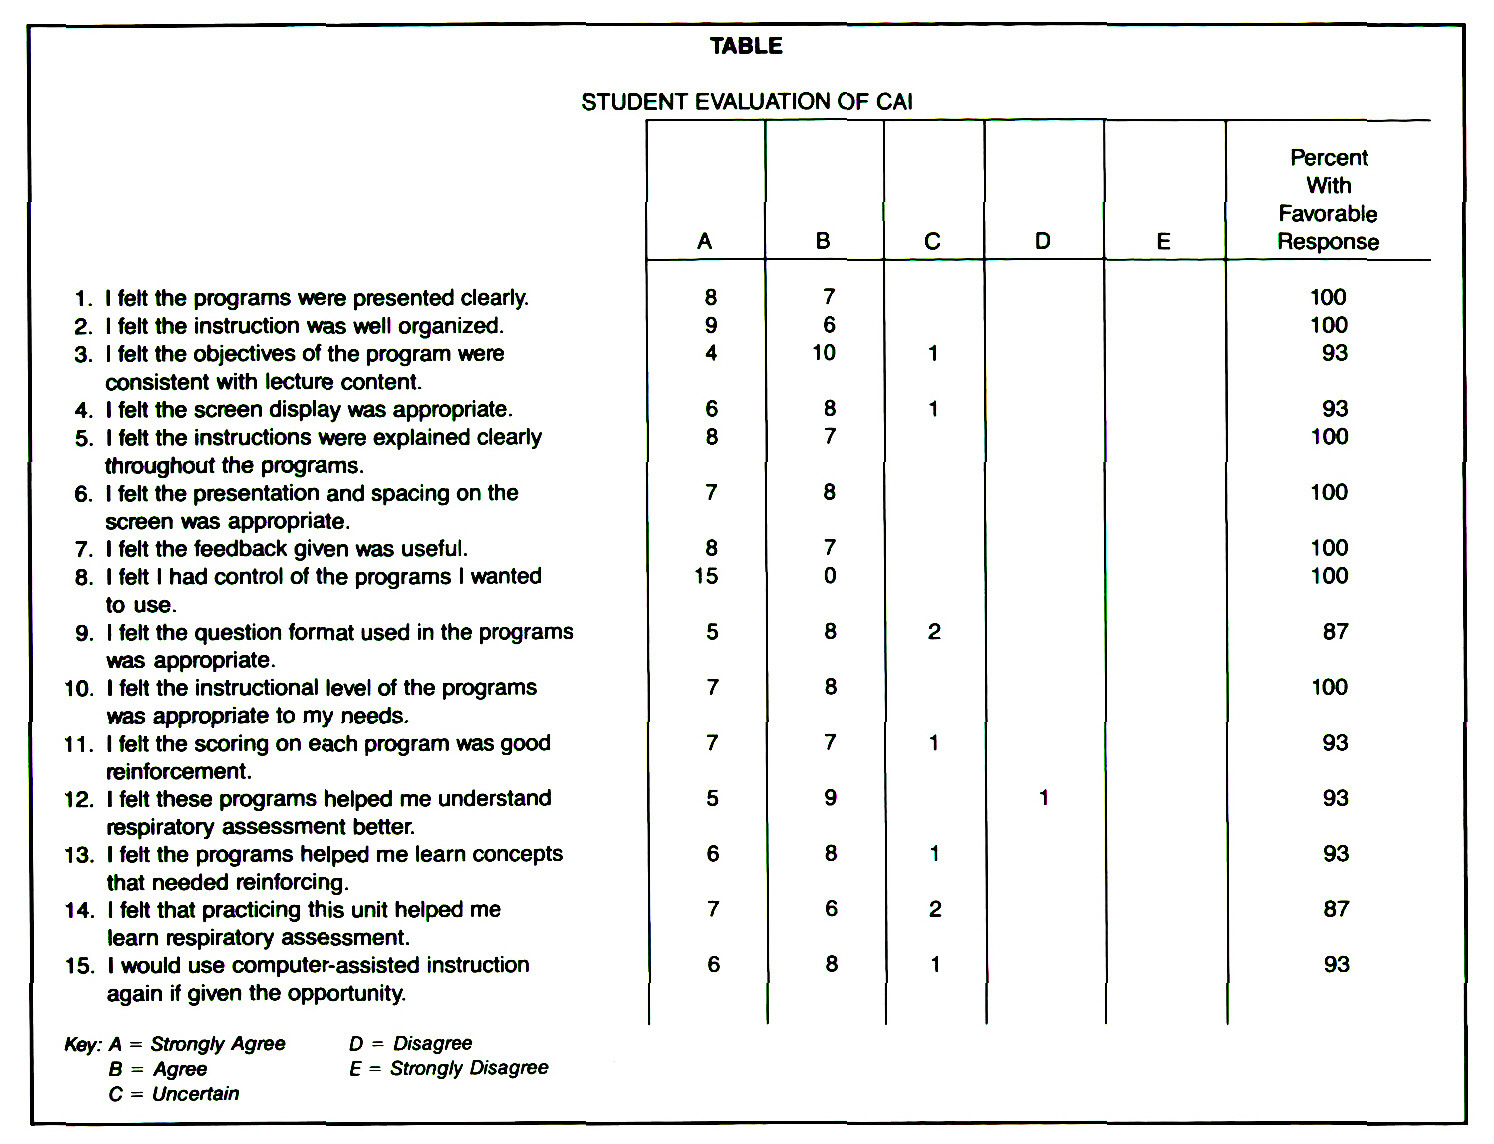 TABLESTUDENT EVALUATION OF CAI